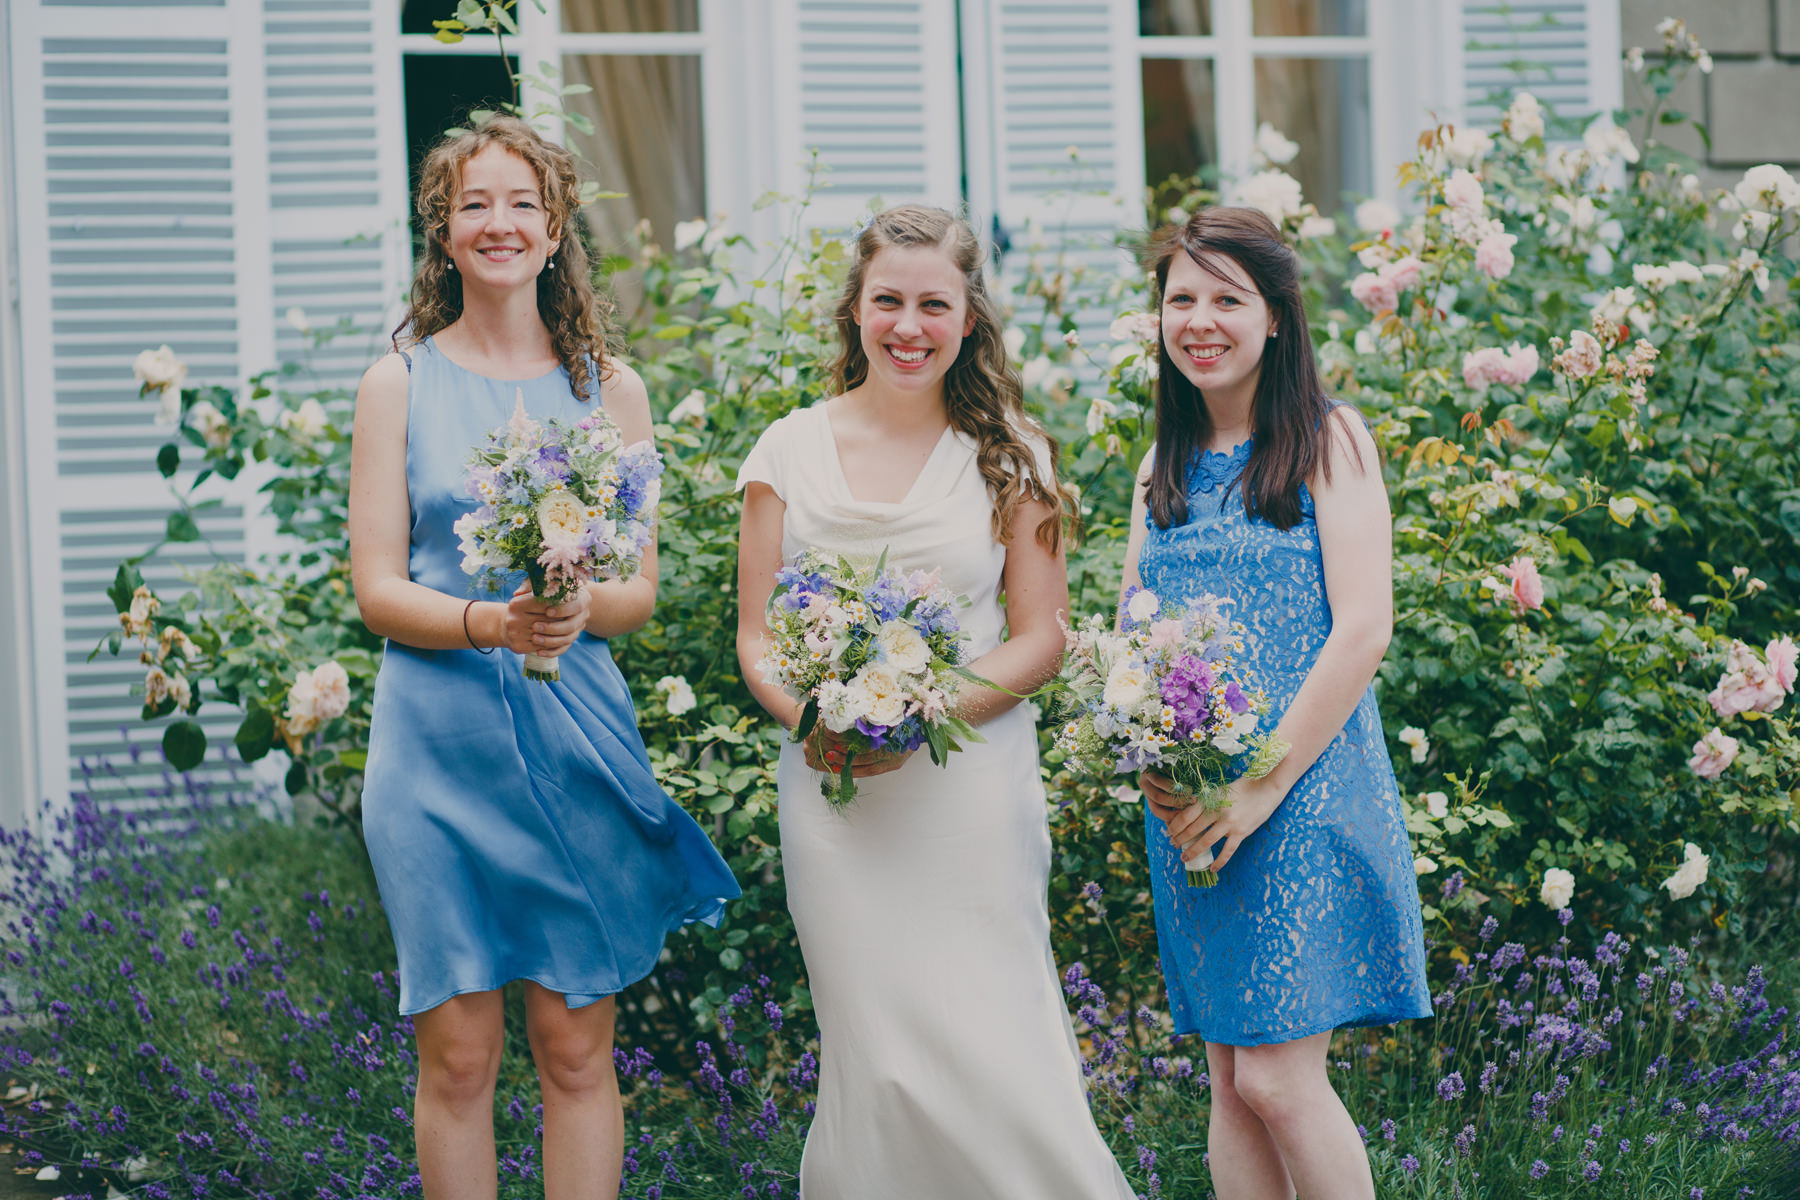 5 bride with bridesmaids cornflower blue dresses outside York House .jpg